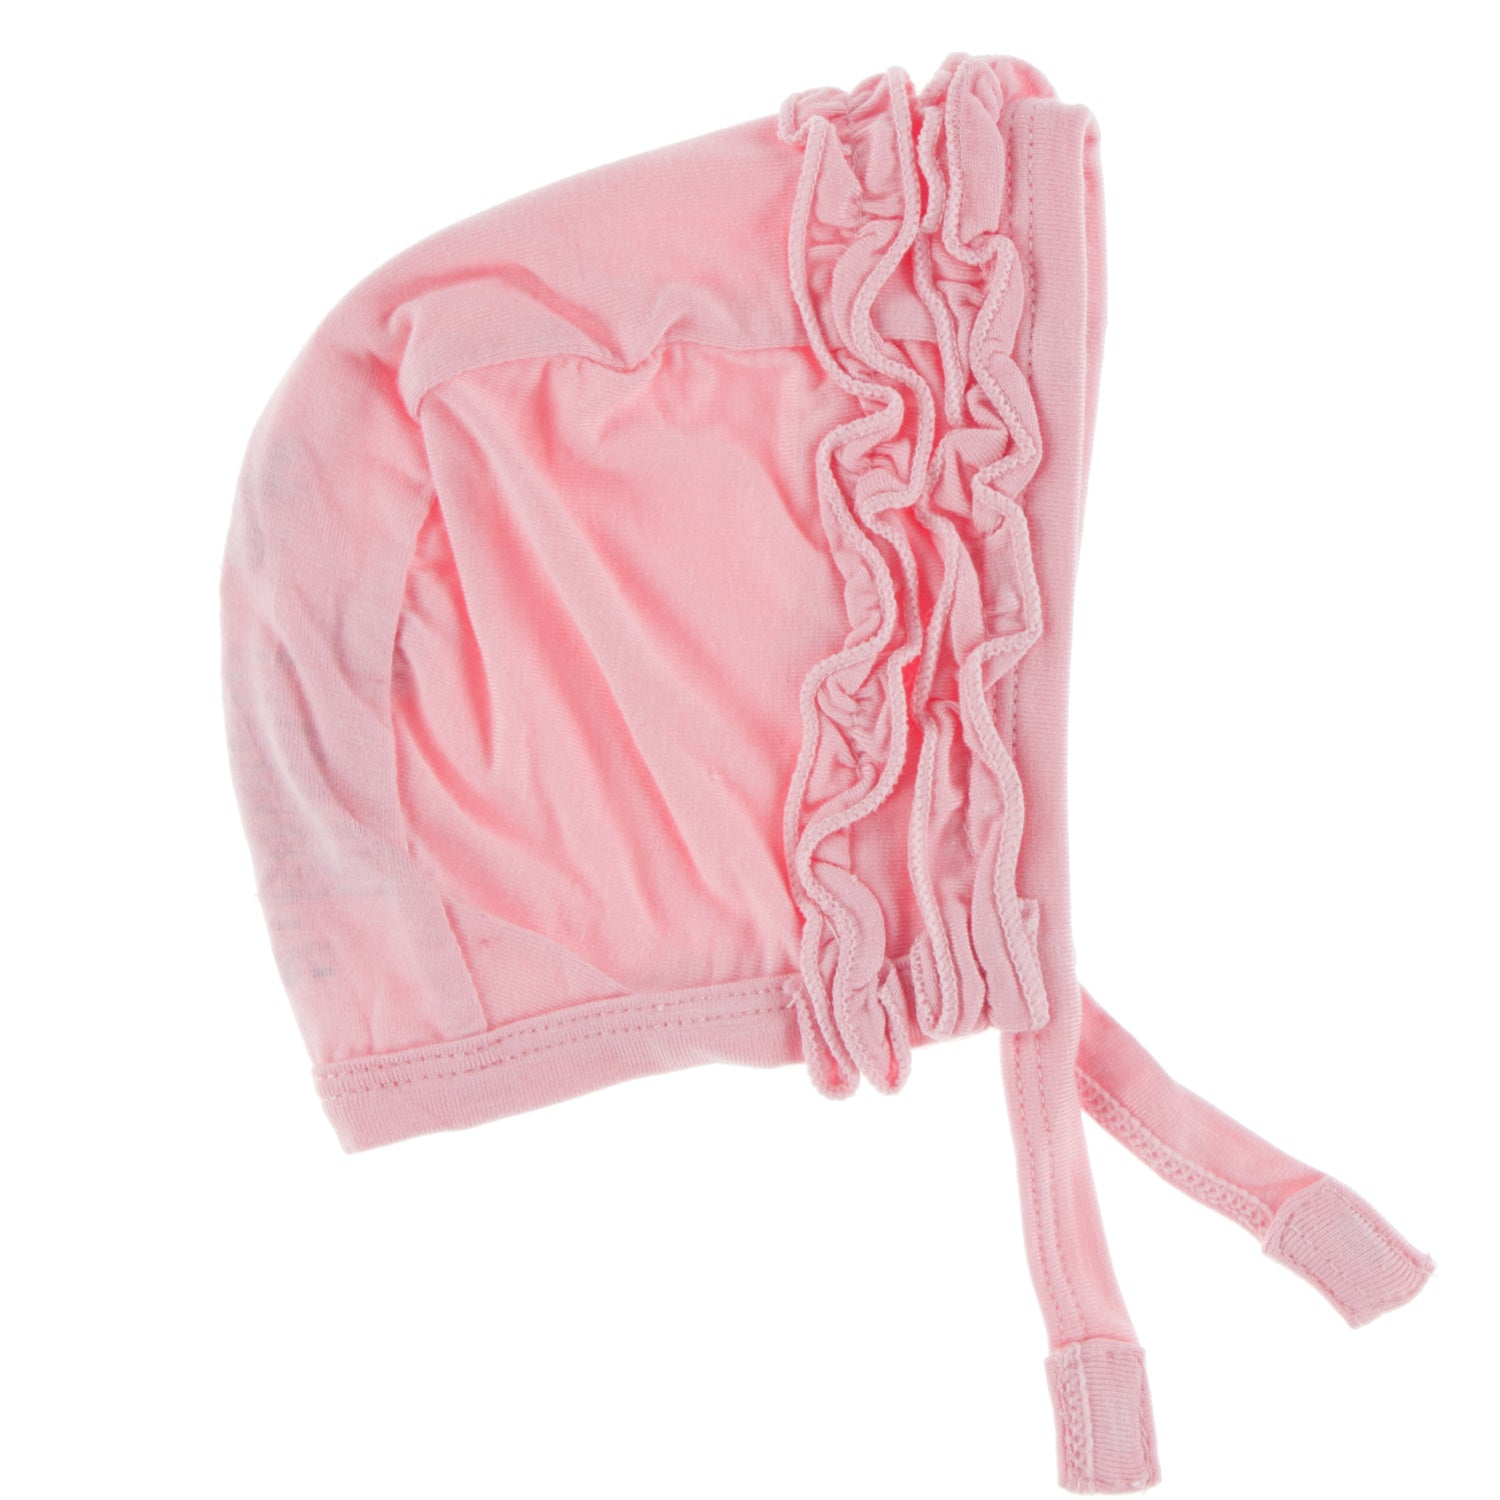 KicKee Pants Ruffle Bonnet - Lotus